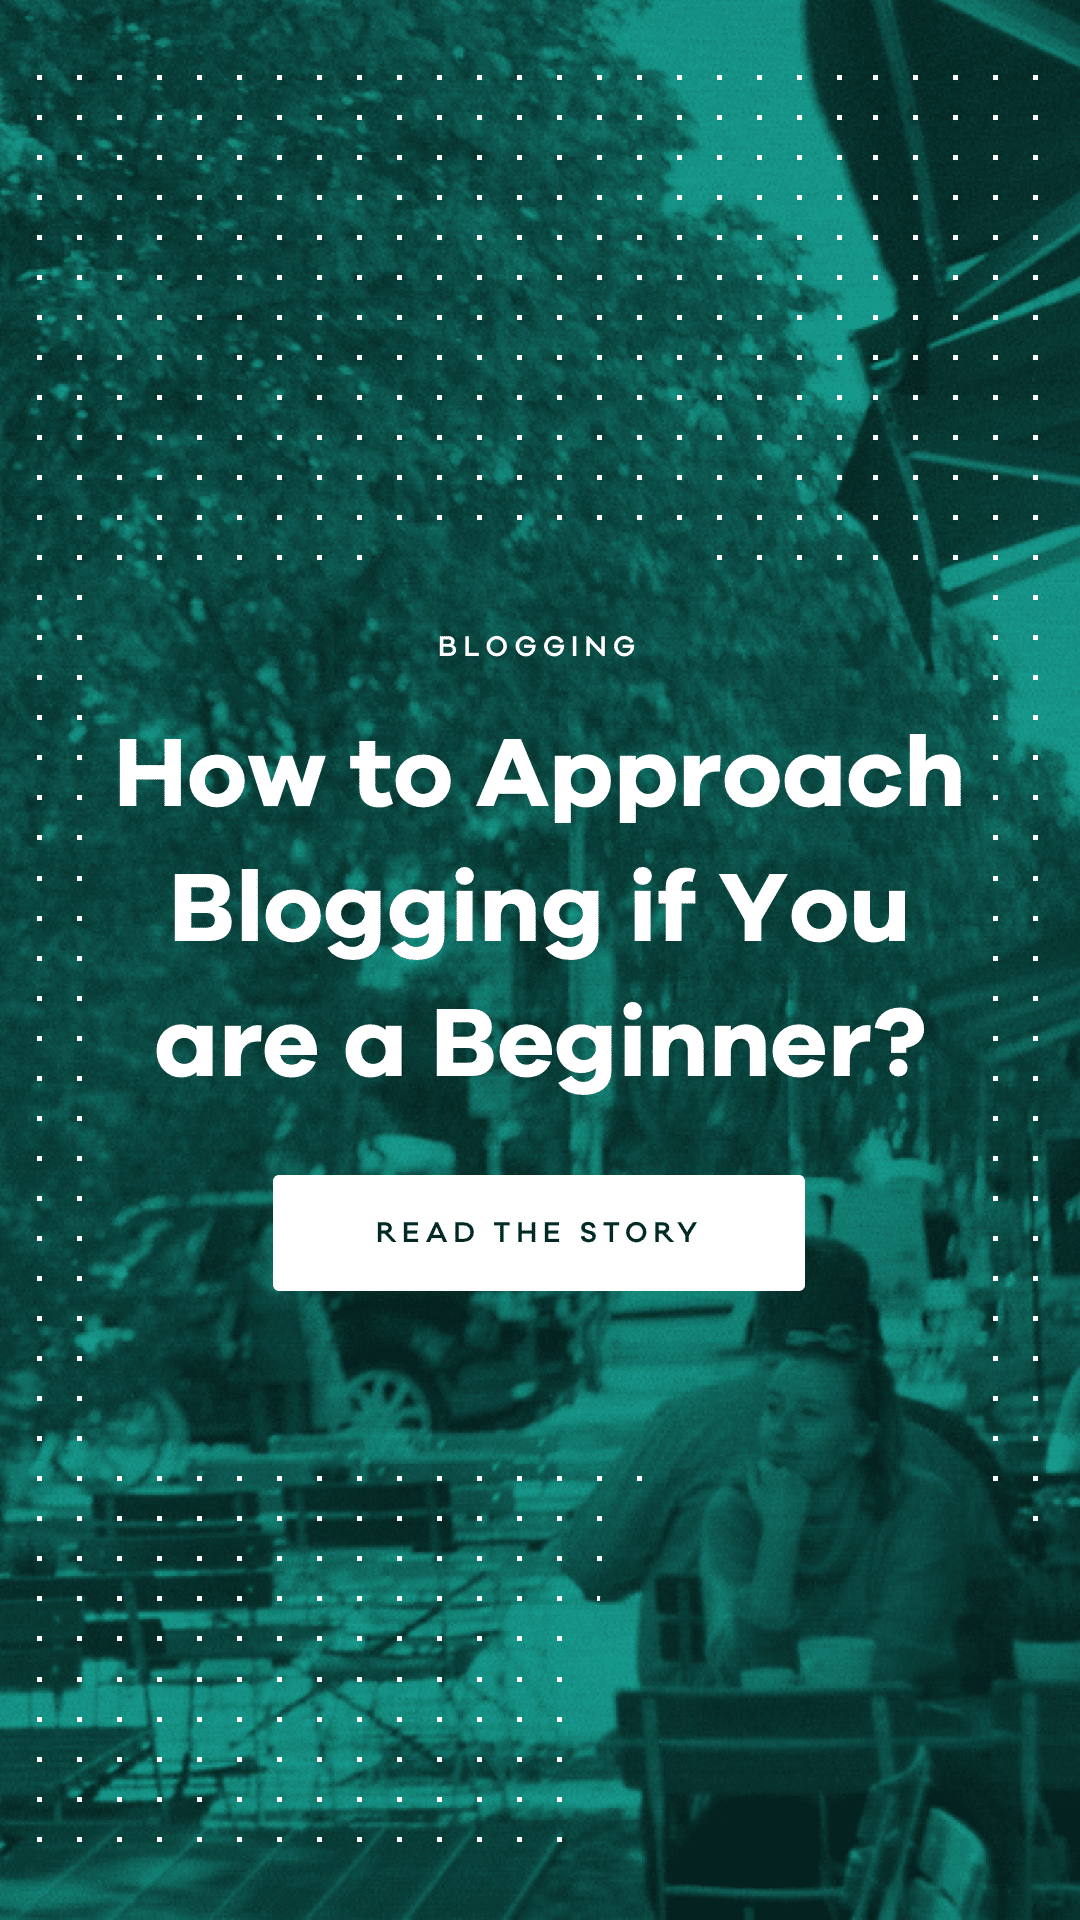 We should talk more frankly (and friendly) about how beginners could approach blogging without feeling overwhelmed.